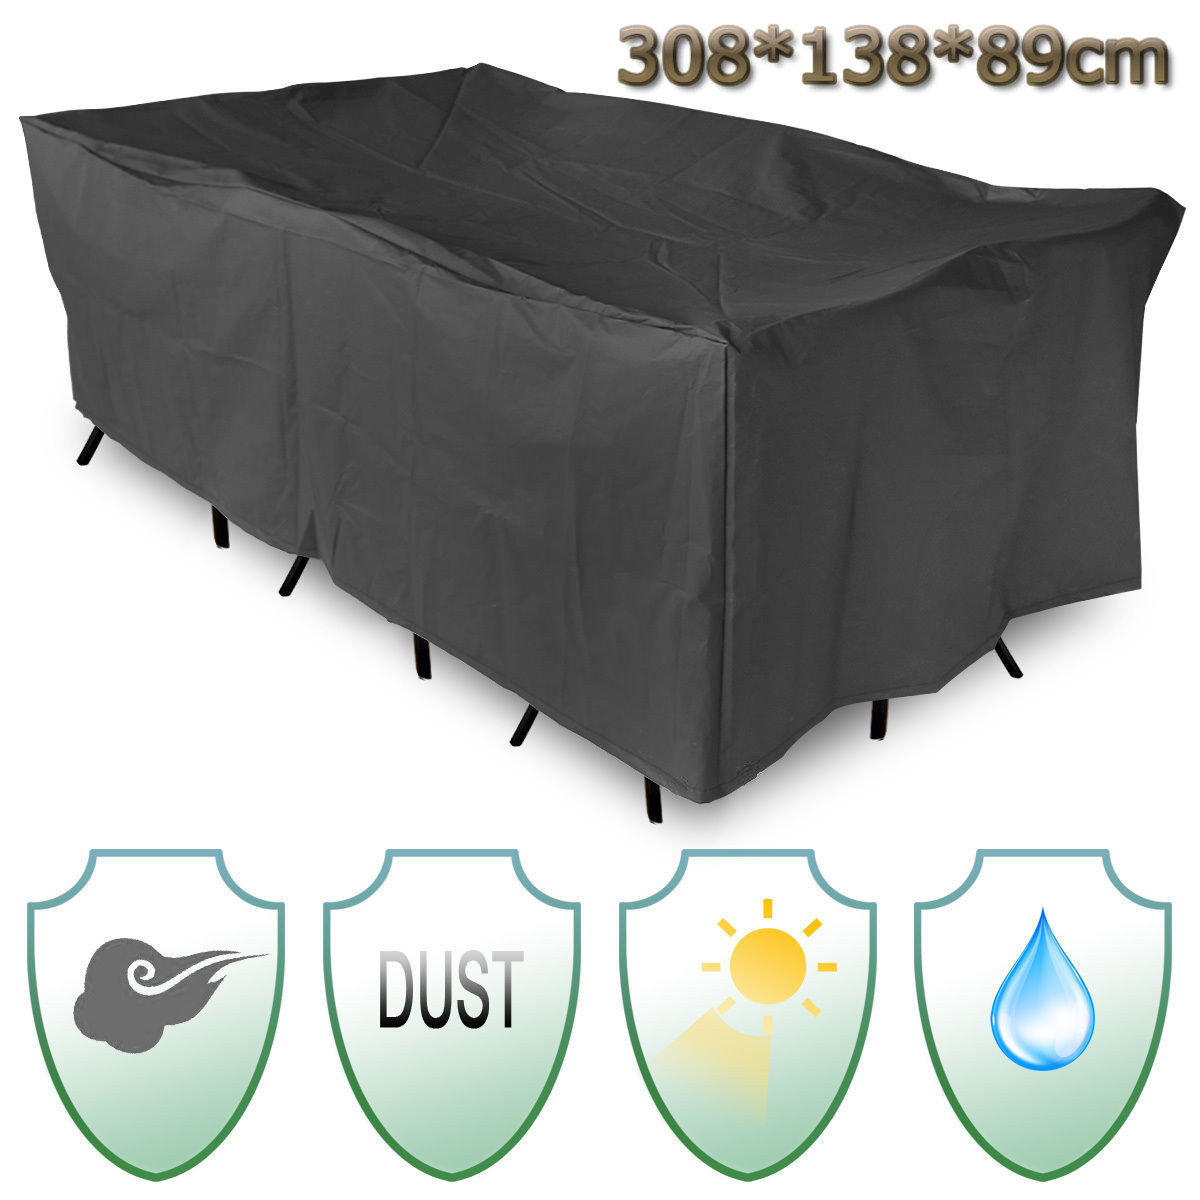 Waterproof Patio Garden Furniture Cover 308x138cm Chair Table Cover Rain Dust UV Resistant Table Cloth Home Textiles SuppliesWaterproof Patio Garden Furniture Cover 308x138cm Chair Table Cover Rain Dust UV Resistant Table Cloth Home Textiles Supplies